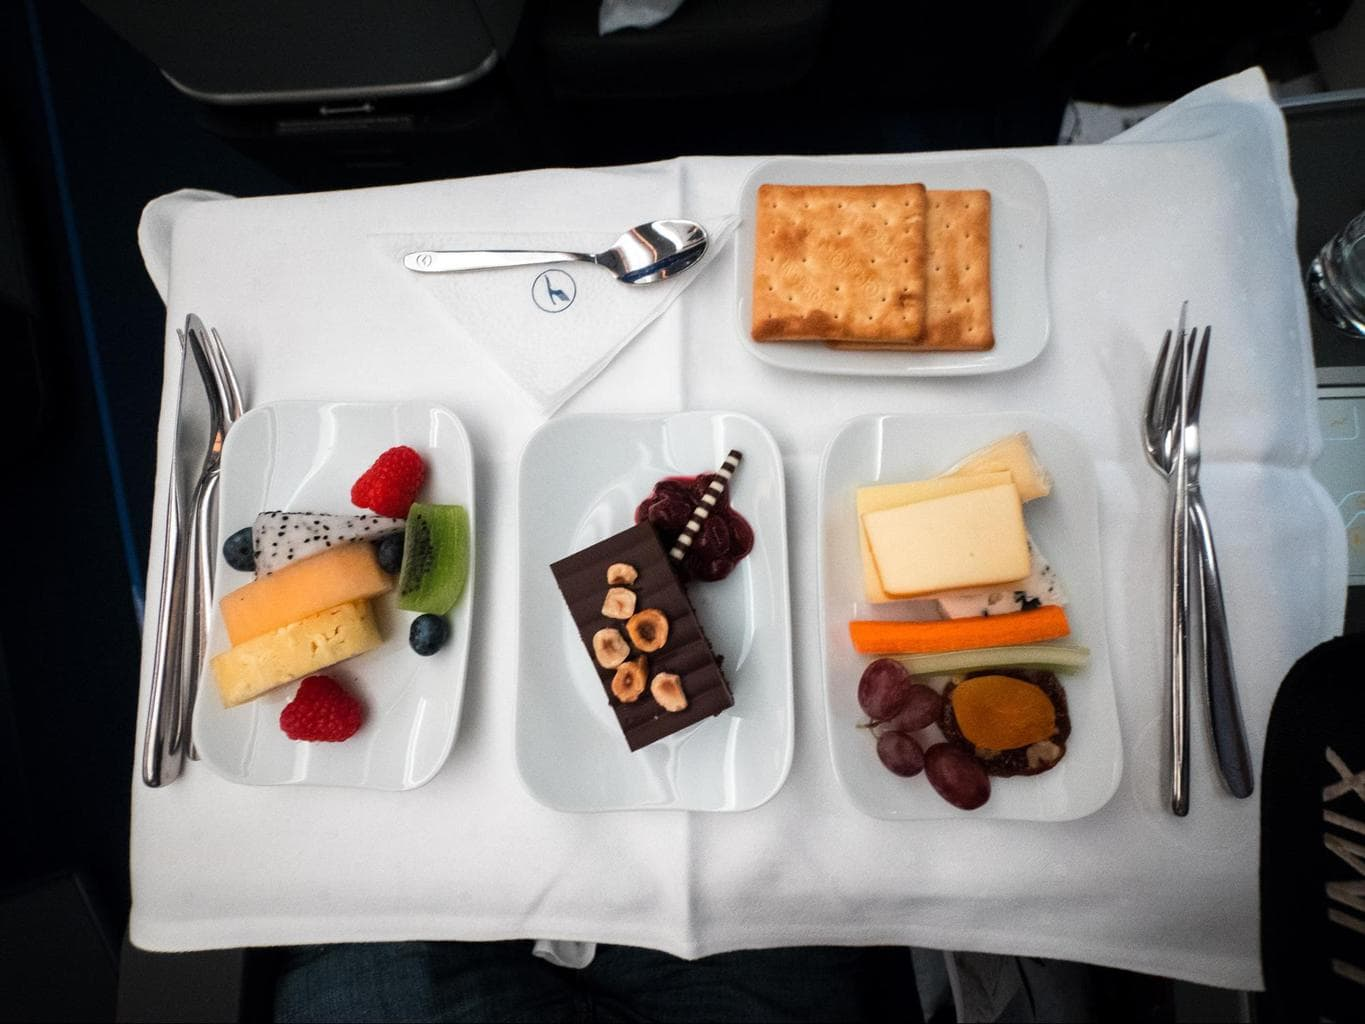 Lufthansa Business Class food - Set of desserts